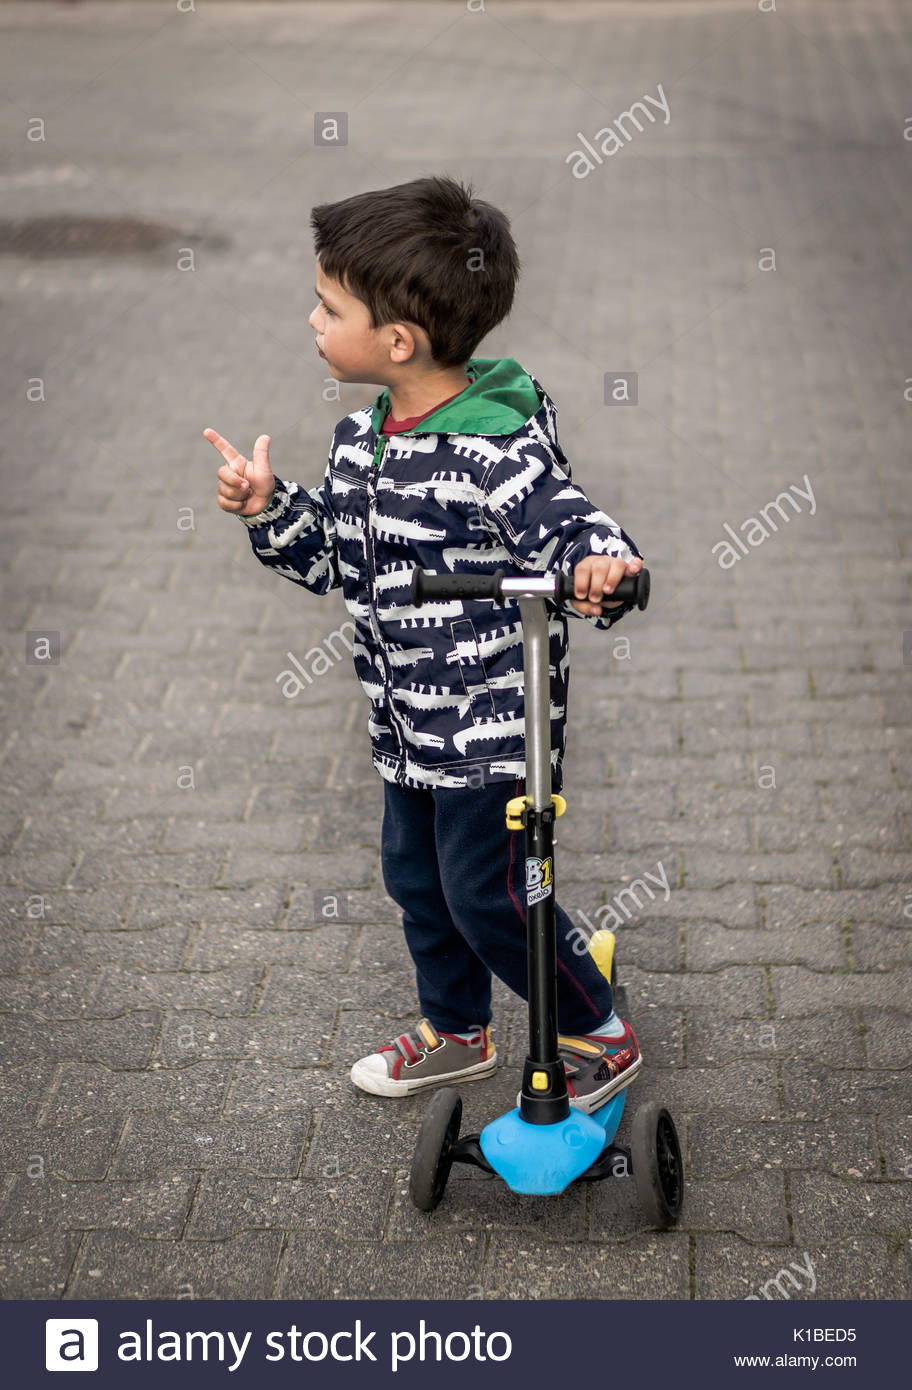 Toddler Boy Standing On A Child Scooter And Pointing On Something On